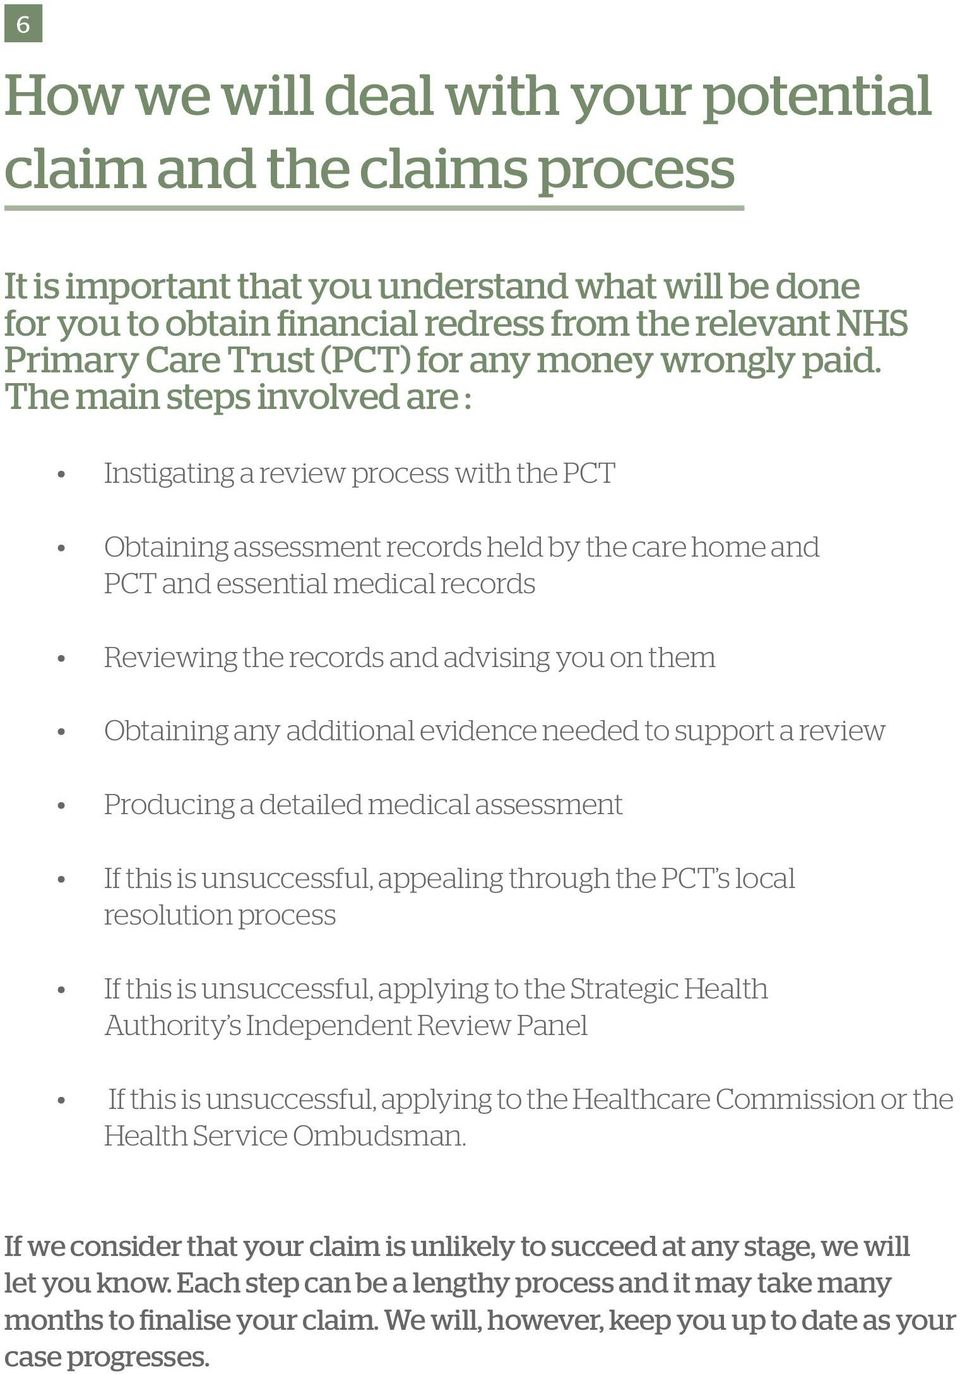 The main steps involved are : Instigating a review process with the PCT Obtaining assessment records held by the care home and PCT and essential medical records Reviewing the records and advising you